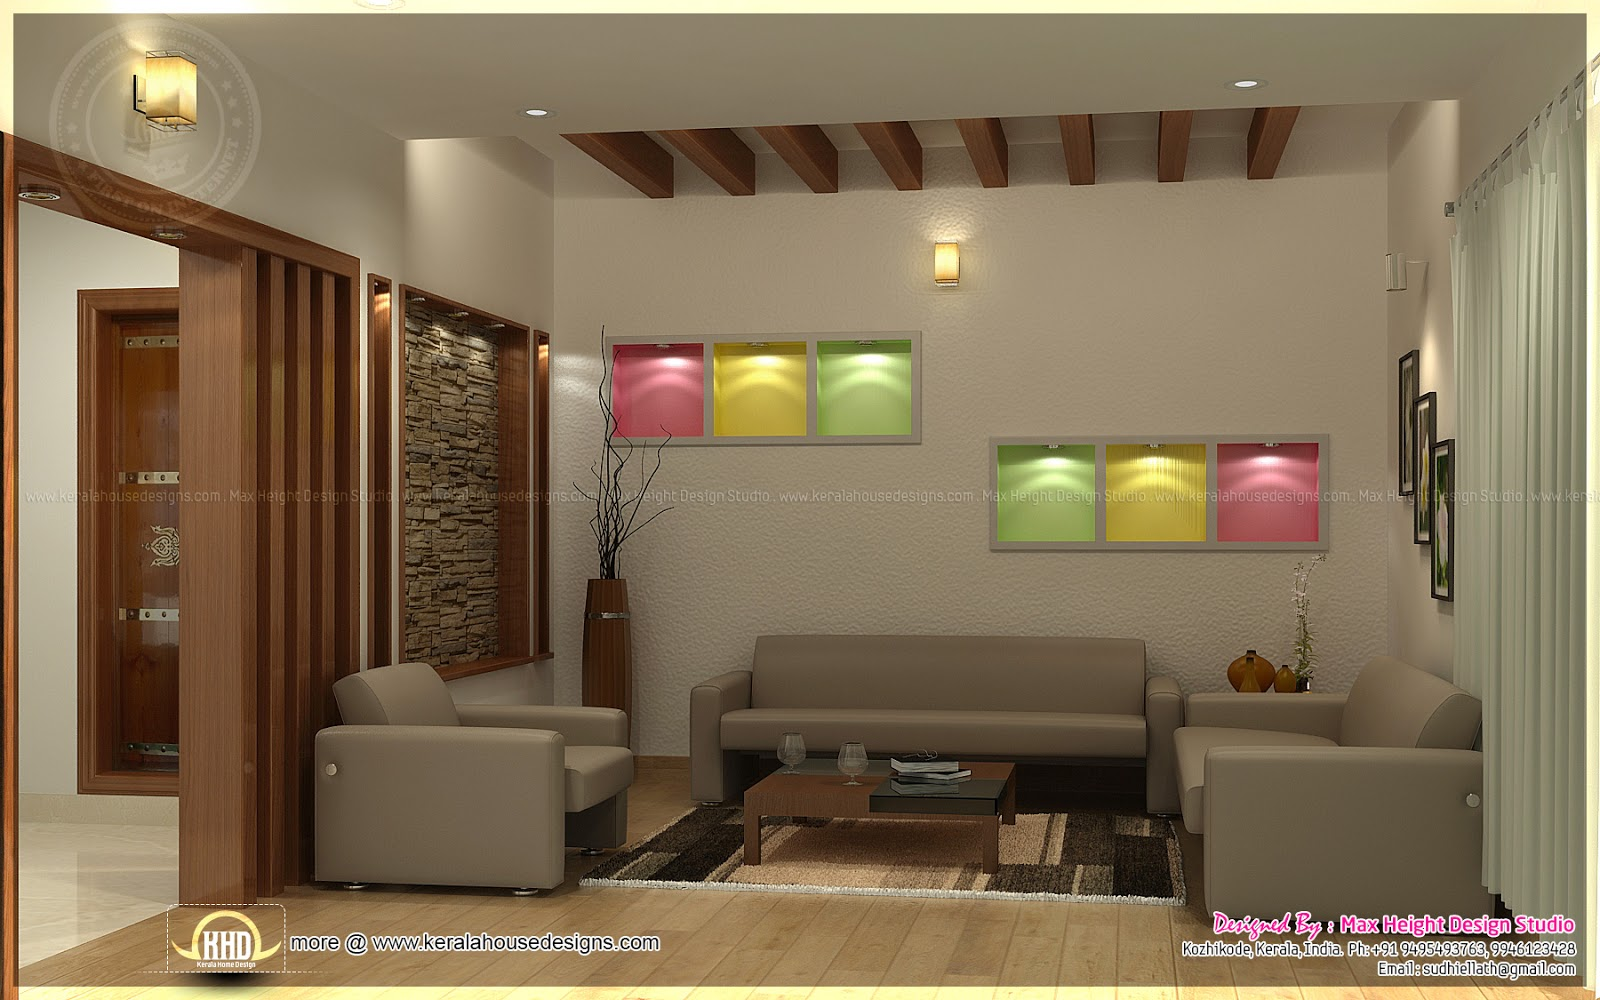 Beautiful interior ideas for home kerala home design and for Interior design of kitchen room in india